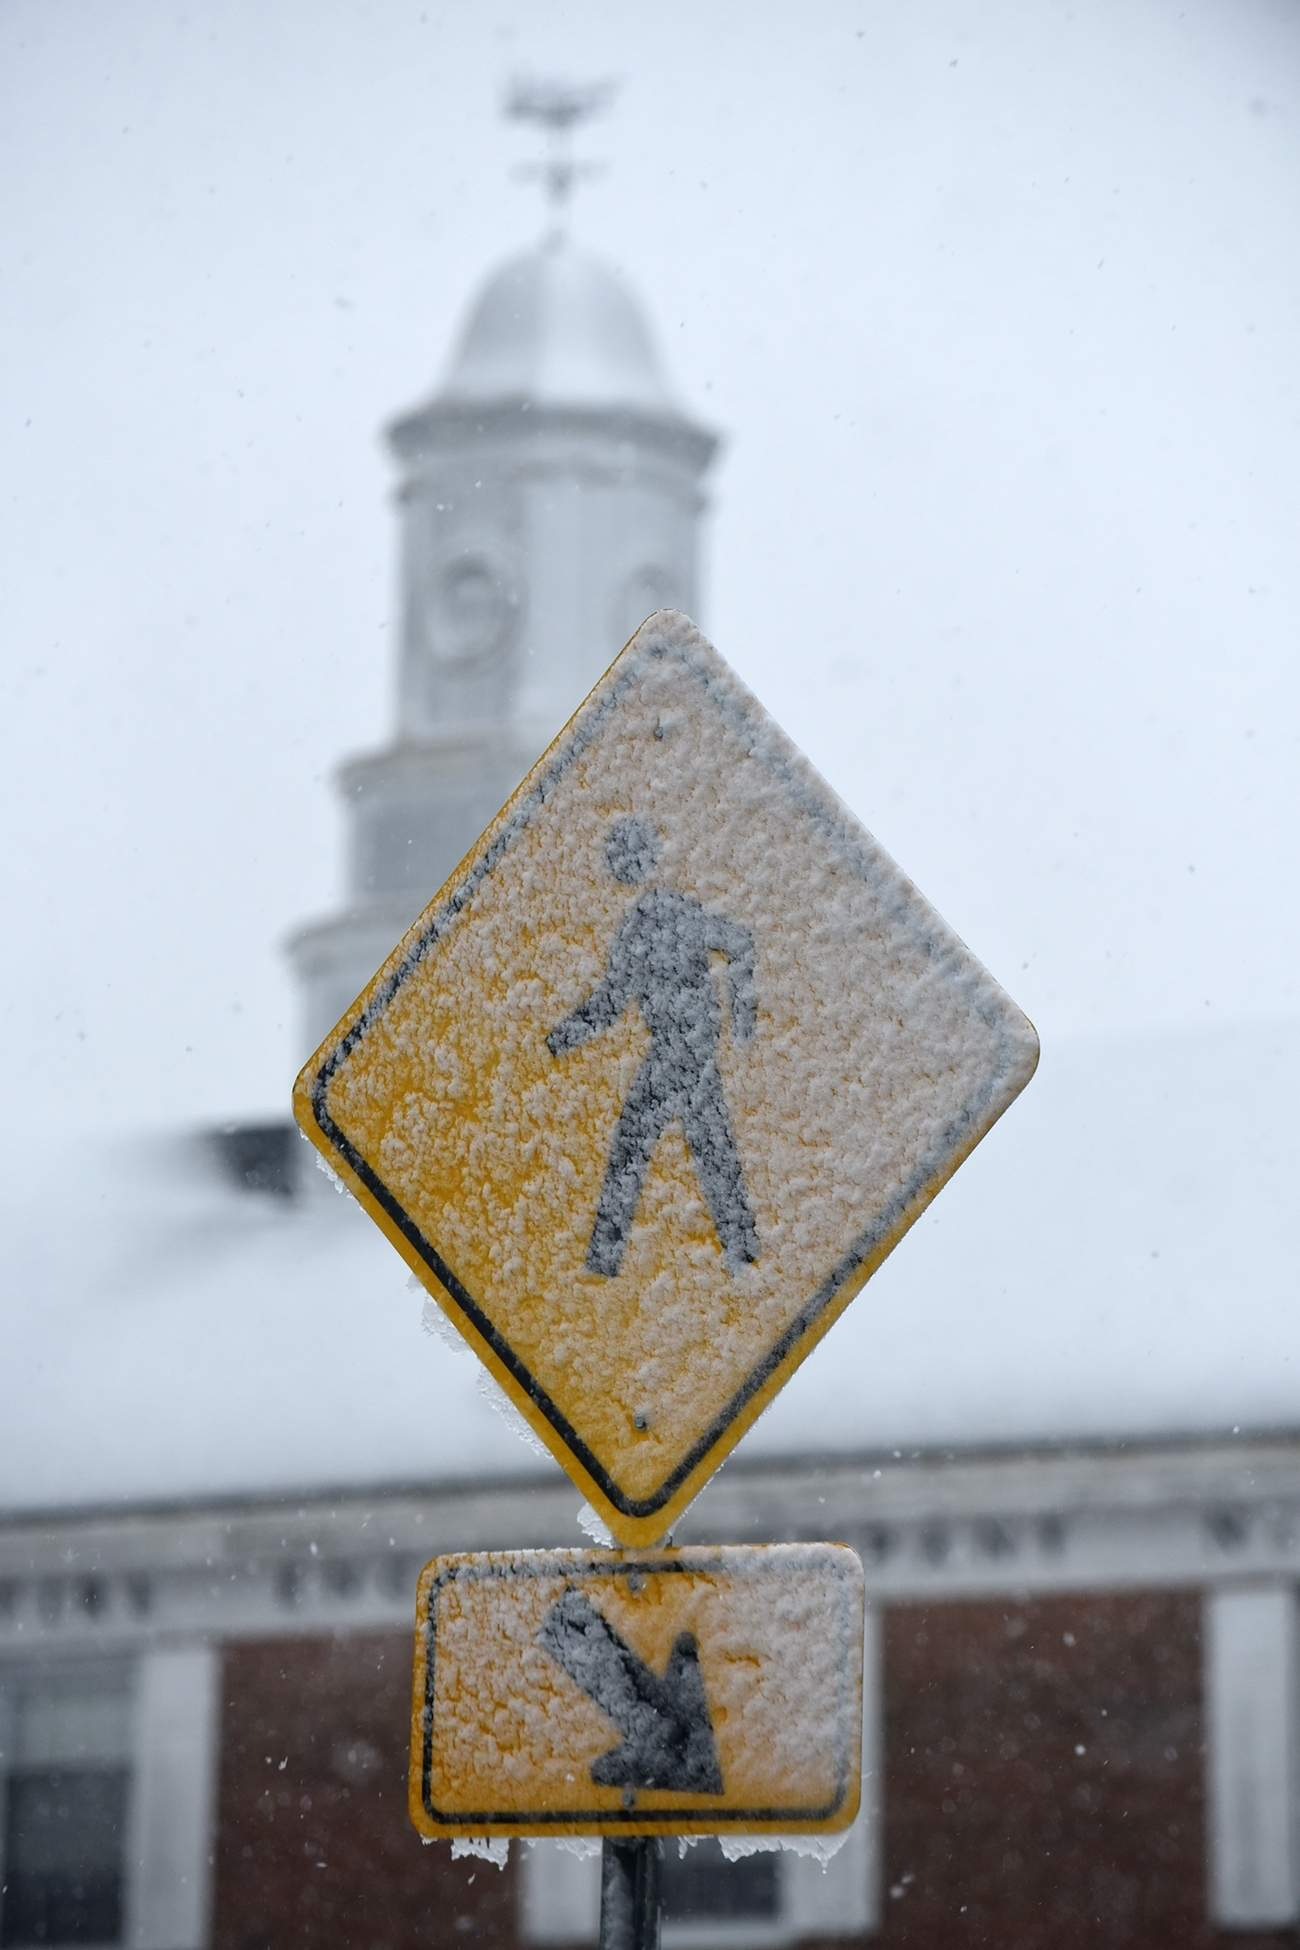 Snow sticks to a pedestrian crossing sign at the Burlington Riverfront Promenade during a snowstorm in Burlington City on Wednesday, March 7, 2018. [CARL KOSOLA / STAFF PHOTOJOURNALIST]